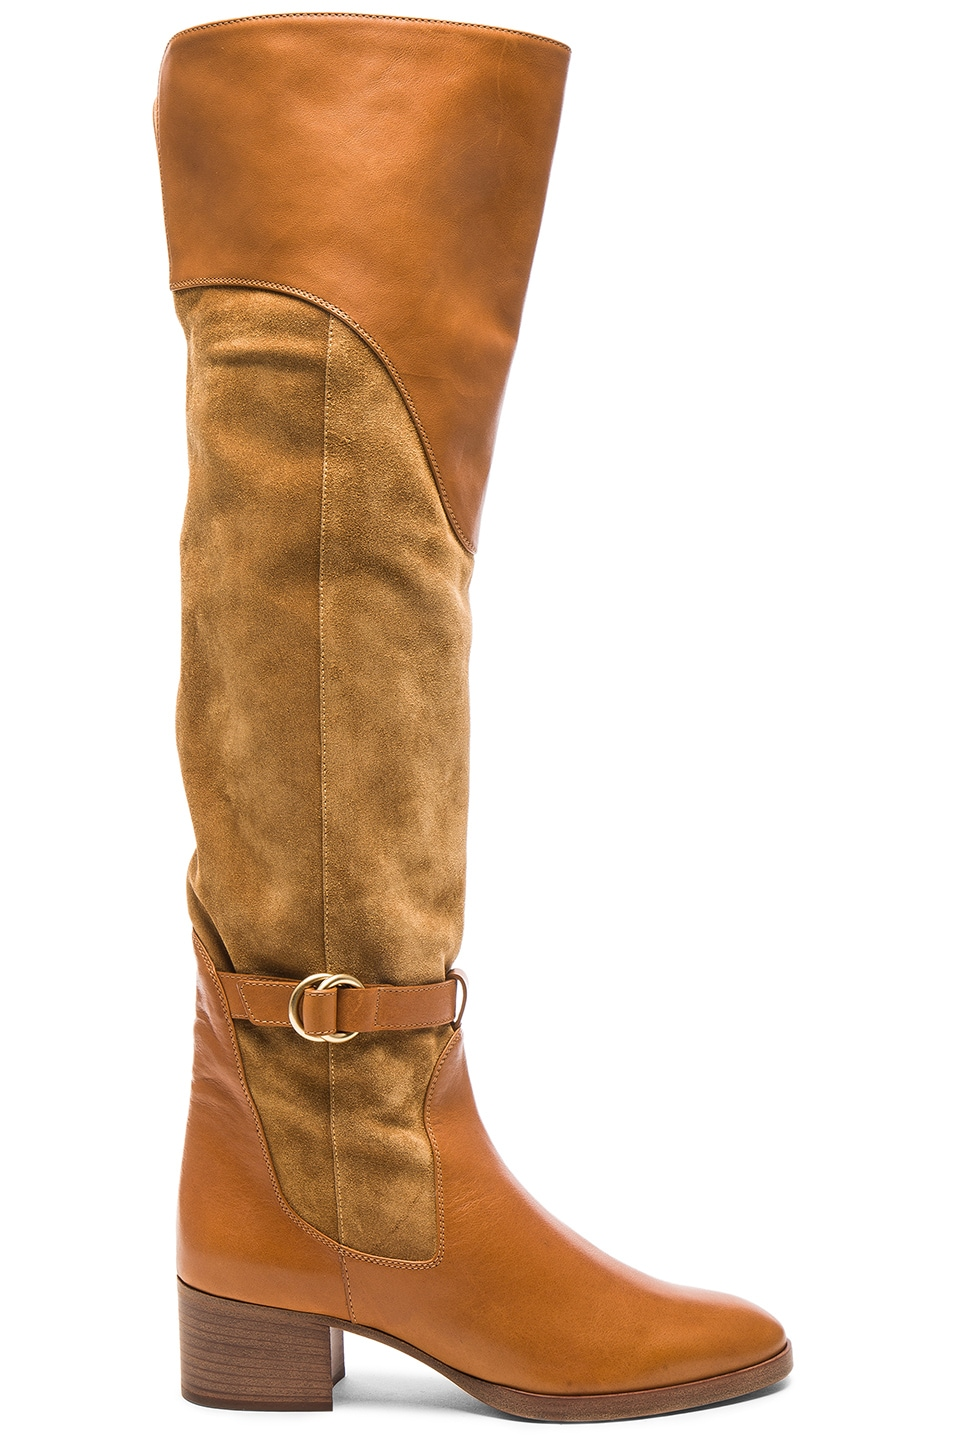 Image 1 of Chloe Suede Lenny Over the Knee Boots in Dune